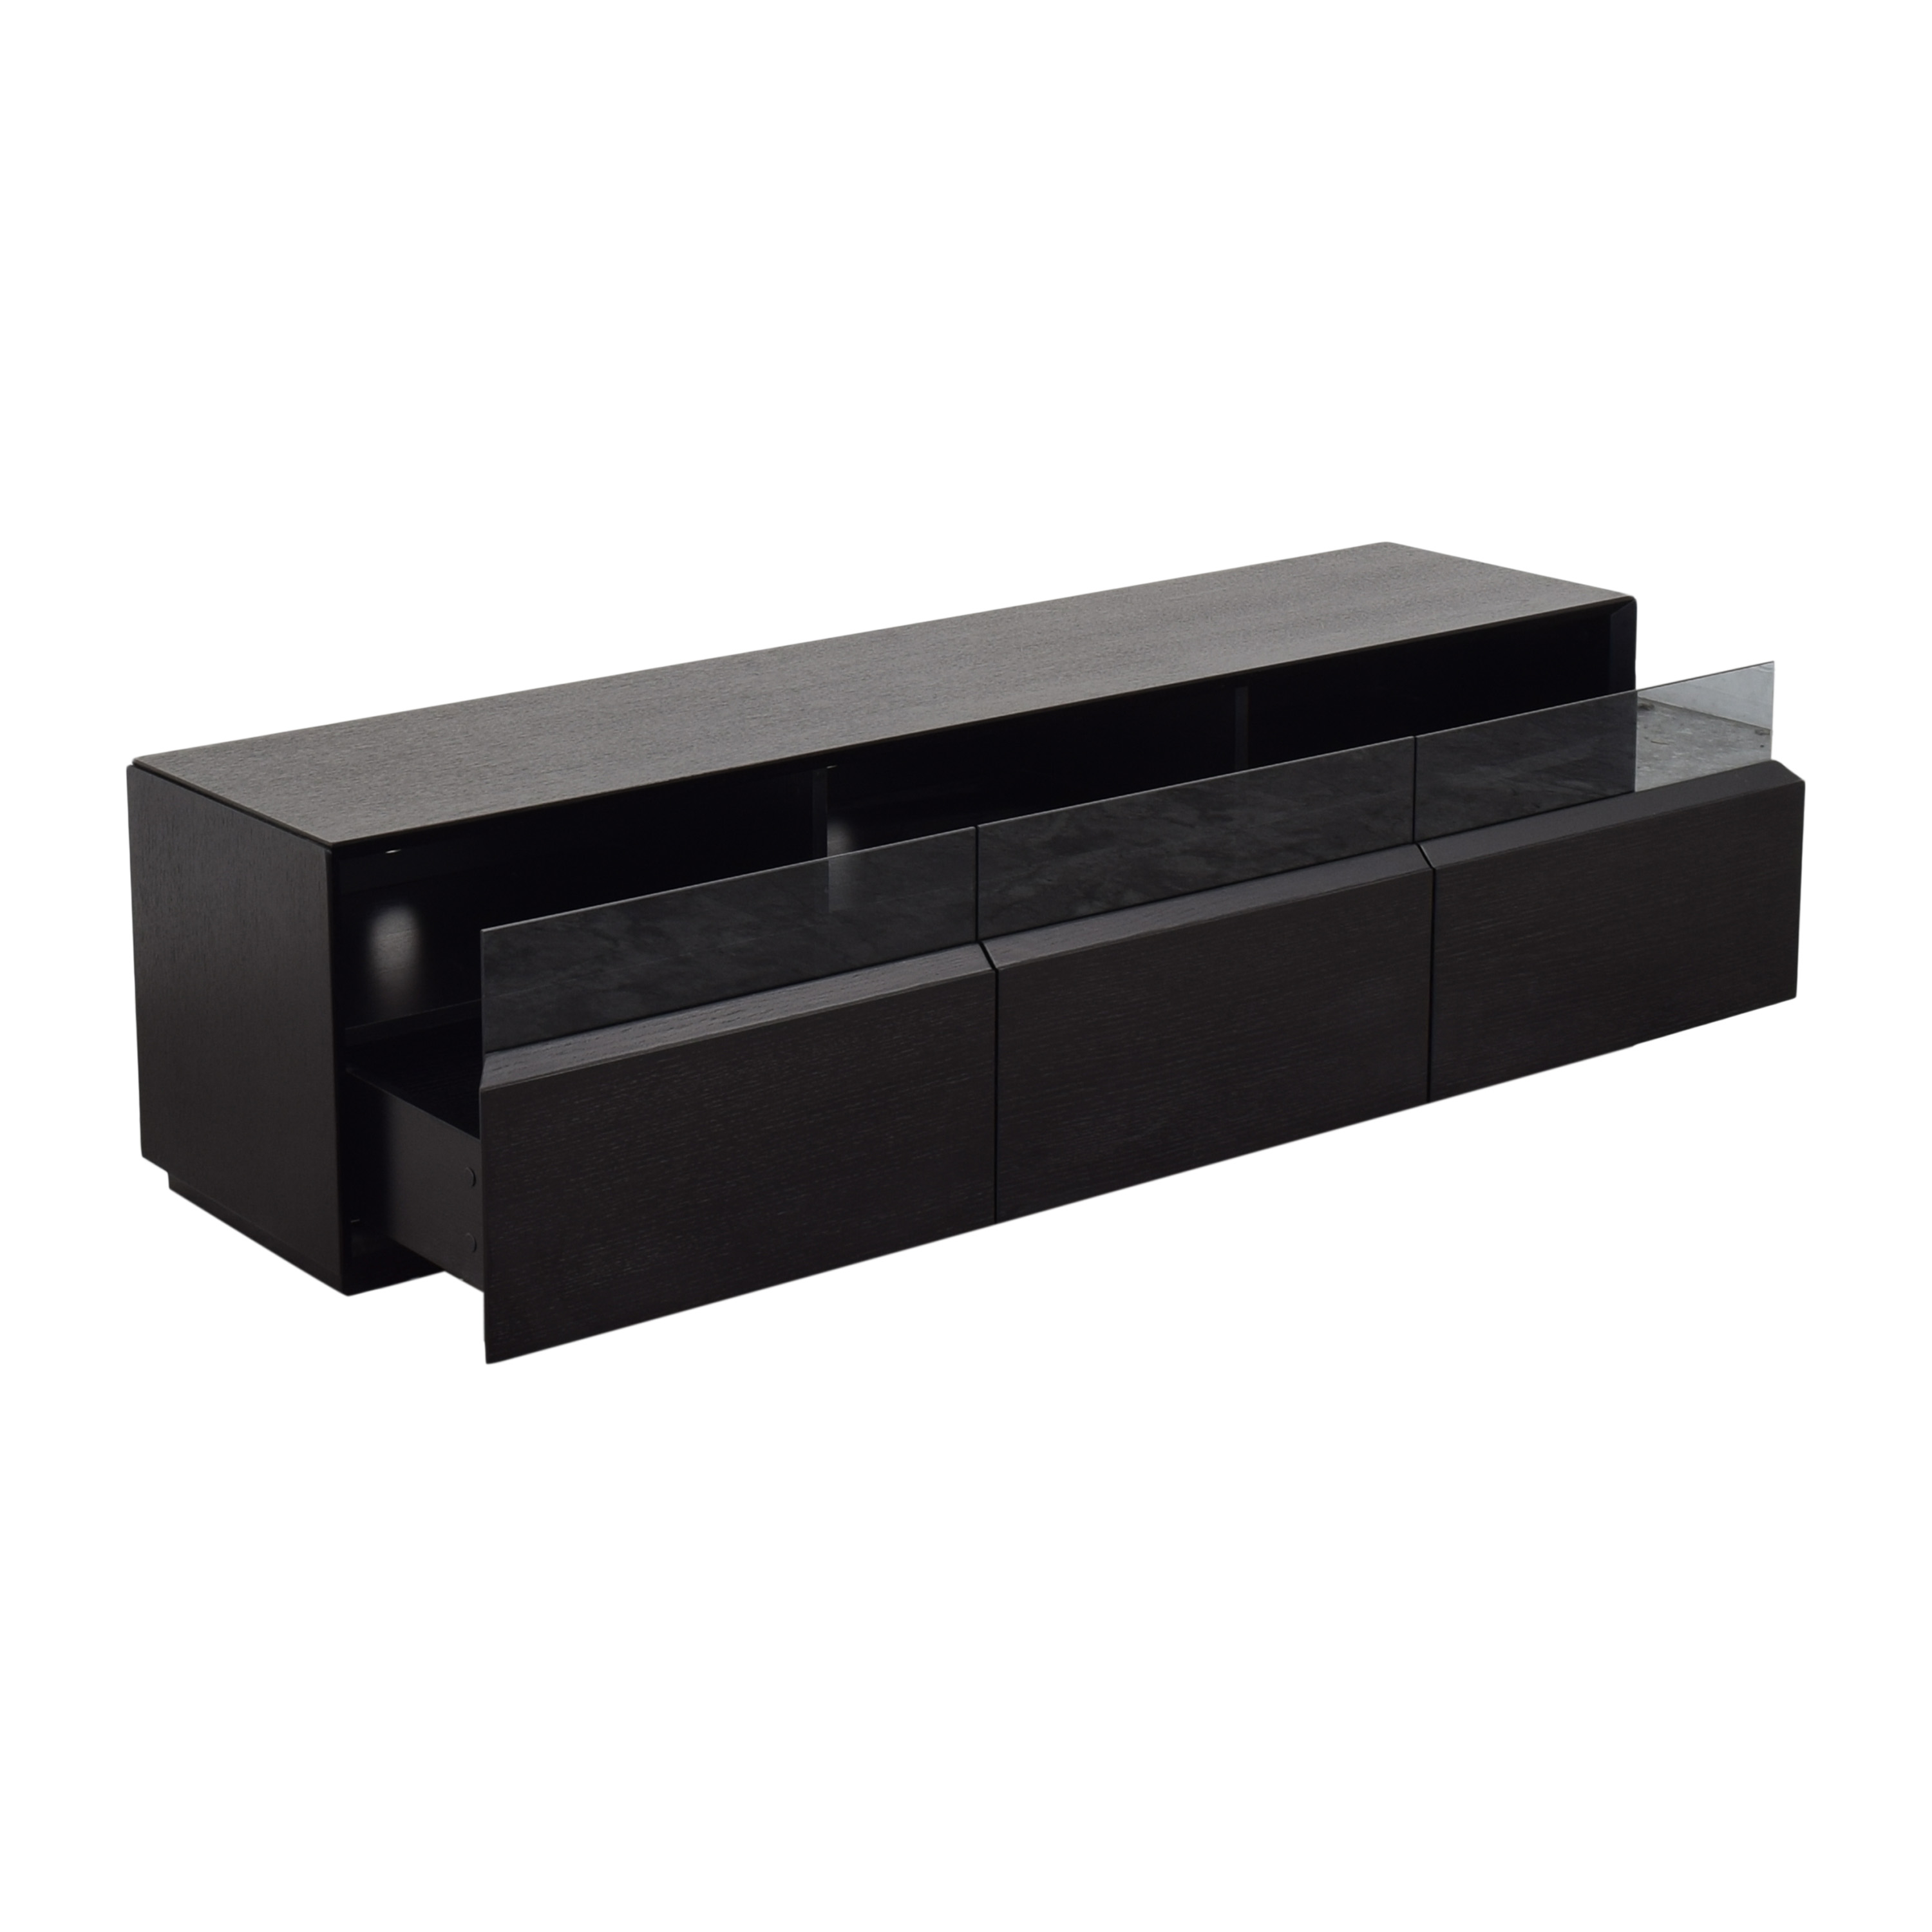 J&M Furniture J&M Contemporary TV Stand Storage